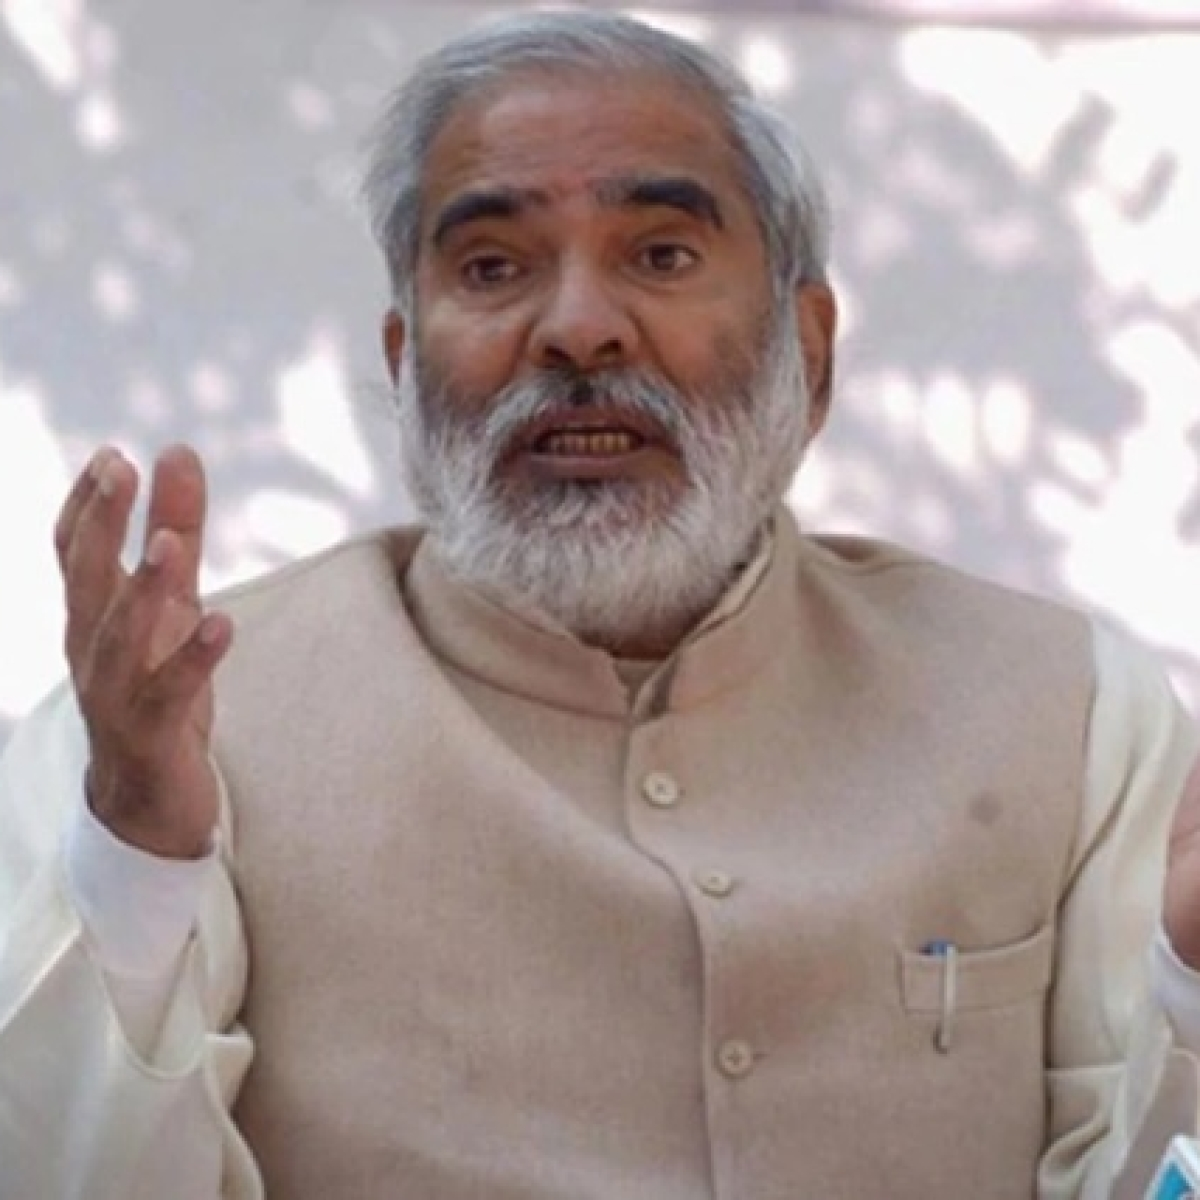 Major setback to RJD after Raghuvansh Prasad Singh resigns from top party post, five of its MLCs join JD(U)